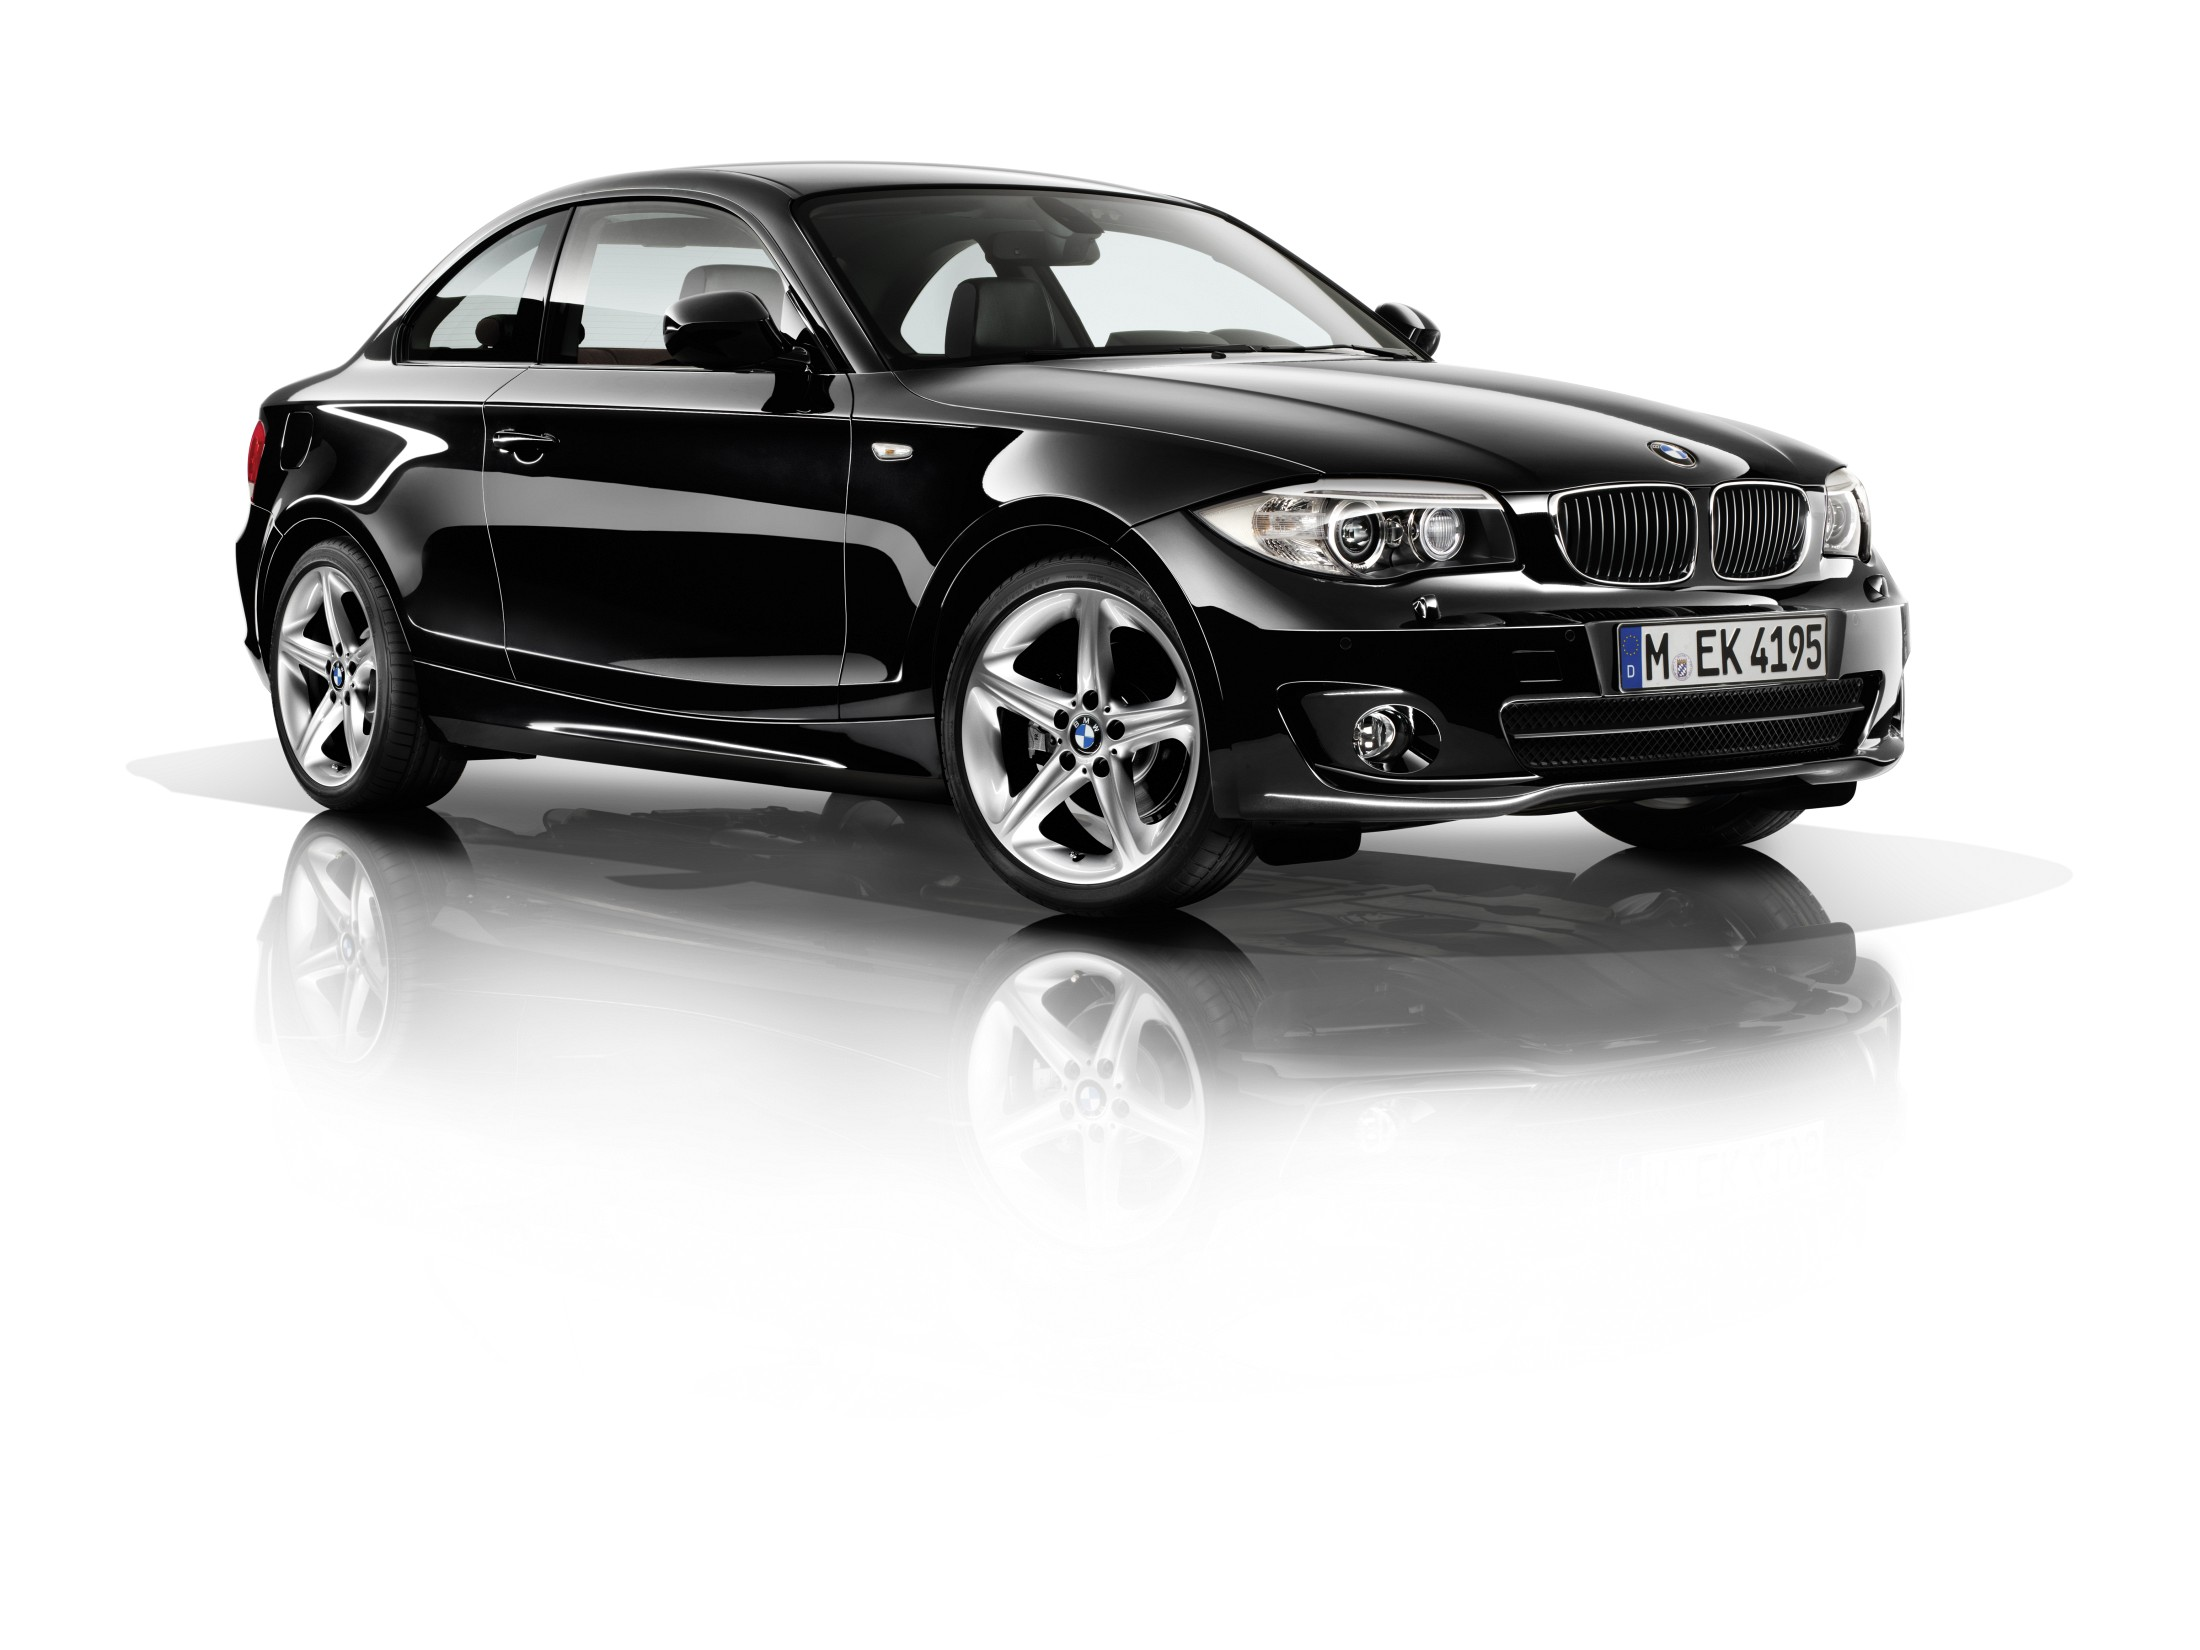 2013 BMW 1Series Safety Review and Crash Test Ratings  The Car